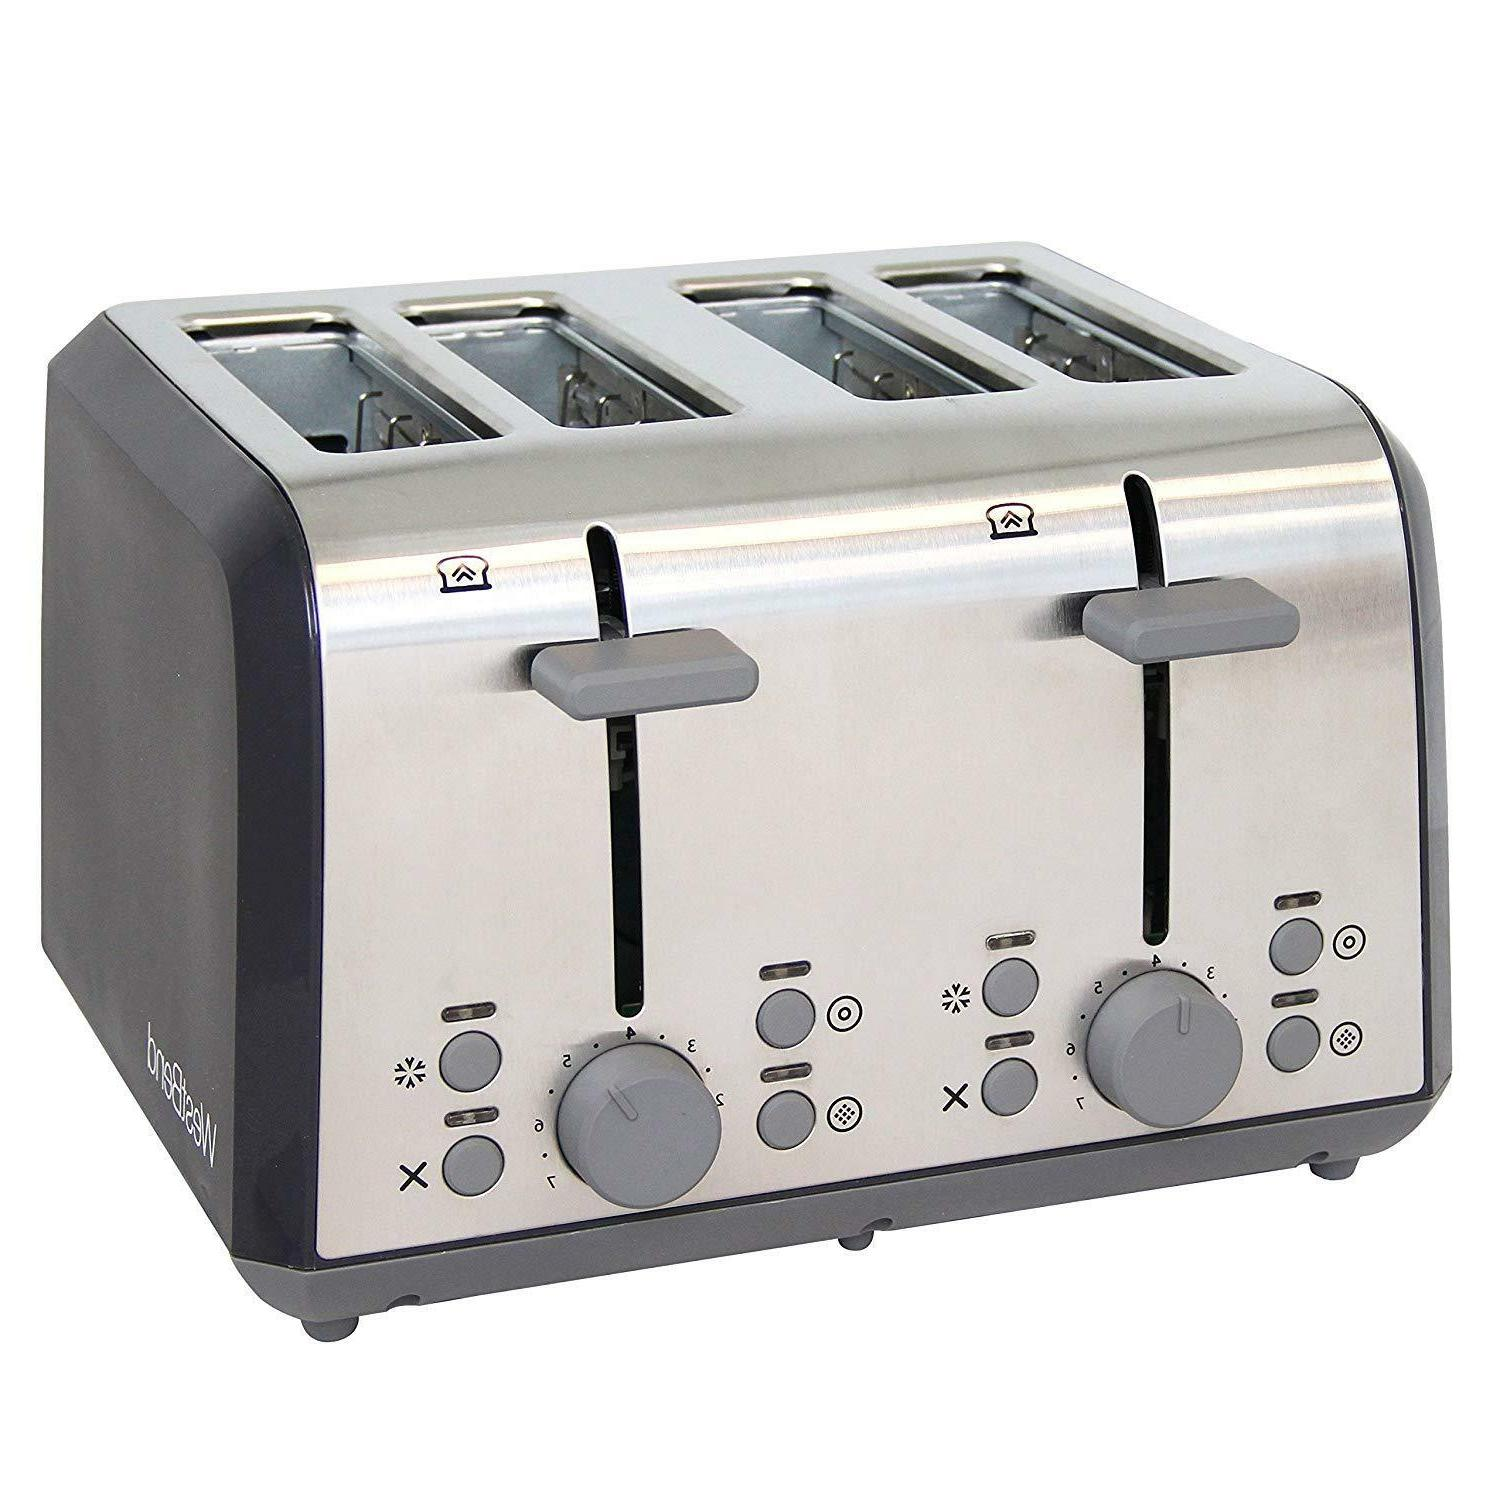 West Bend 78824 Extra Wide Slot Toaster with Bagel Settings